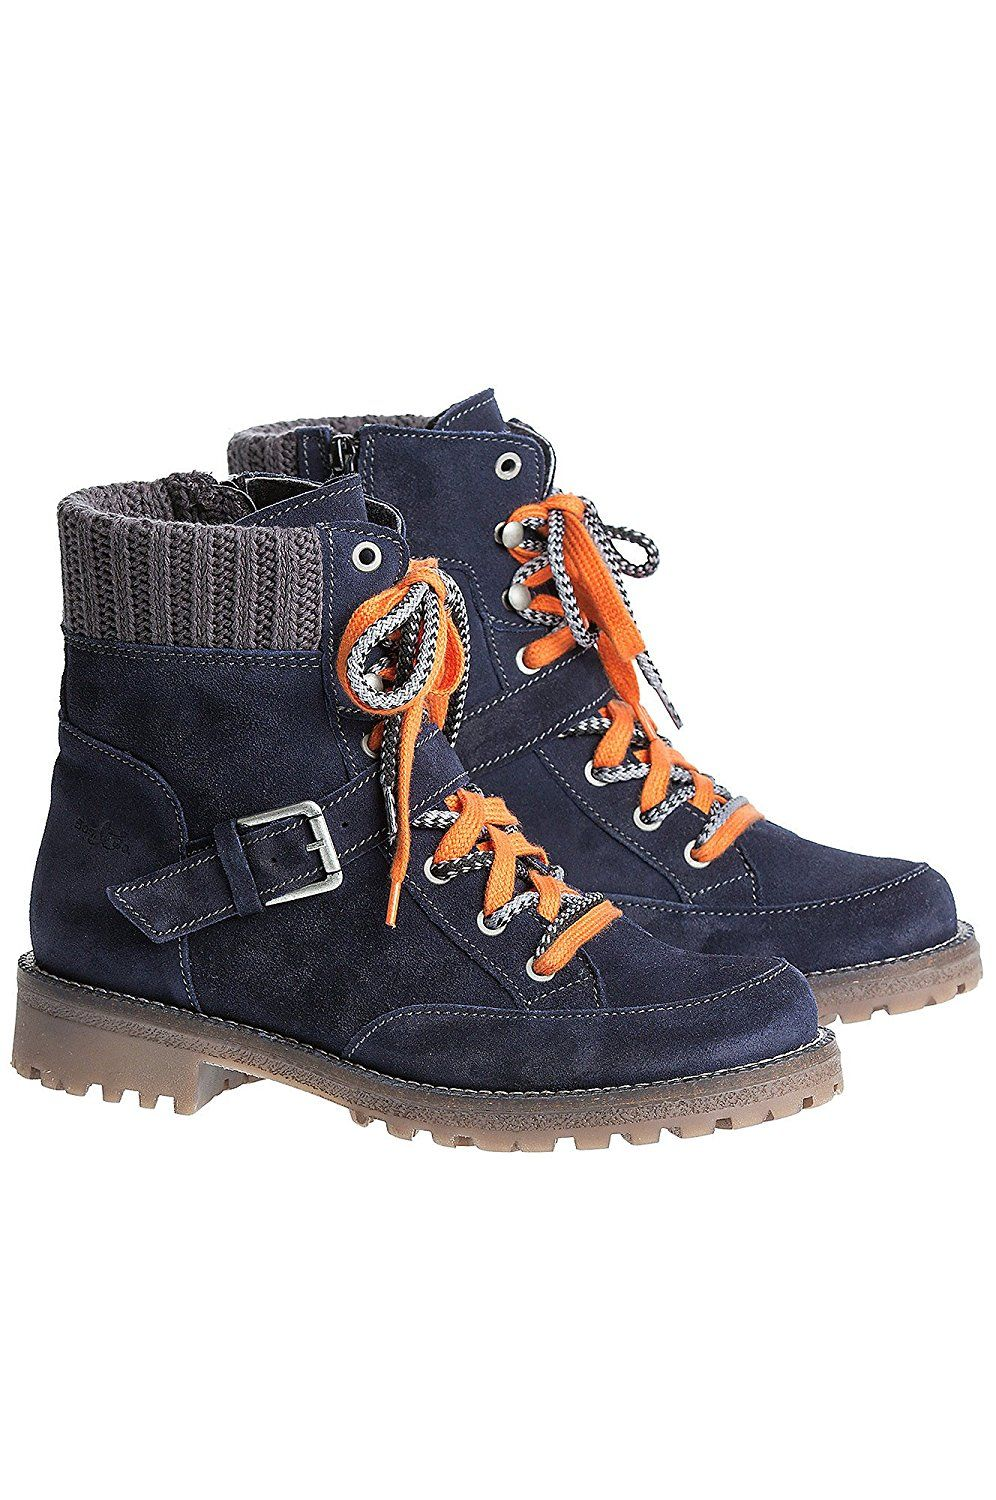 9d6d9aef6b8 Women's Bos   Women's Hiking Shoes and Boots   Hiking shoes, Boots ...